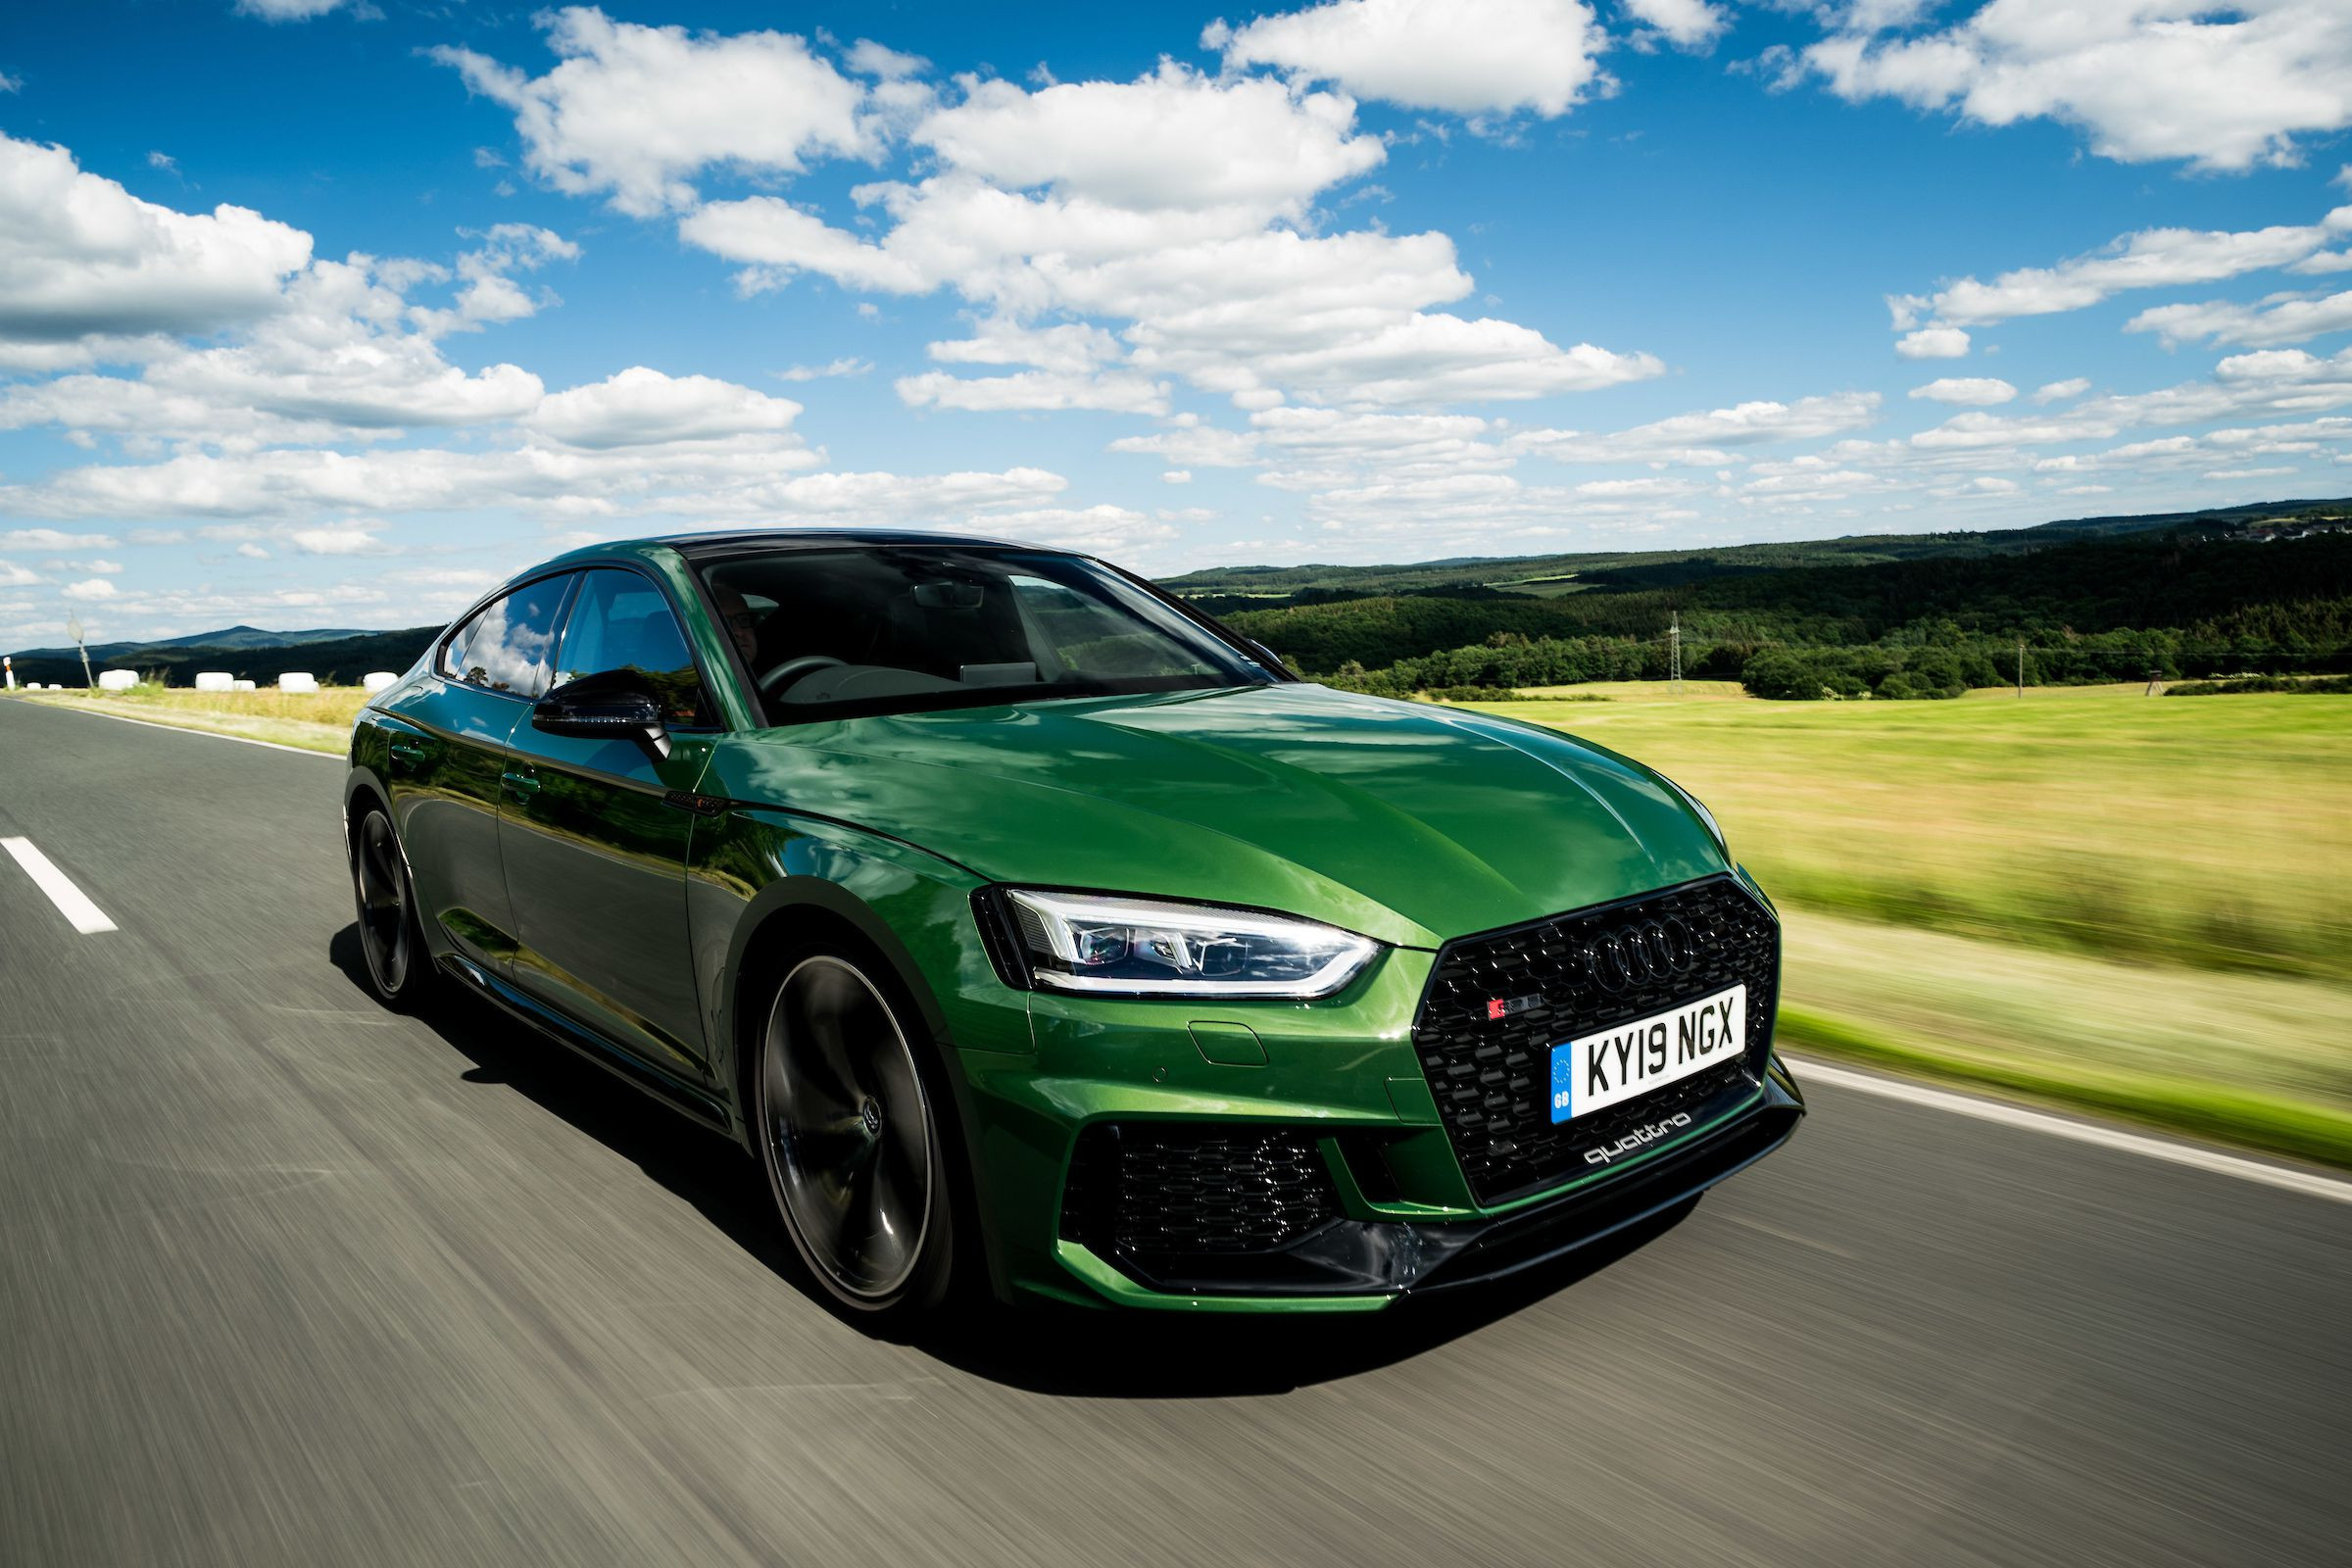 Front view of a green Audi RS5 Sportback